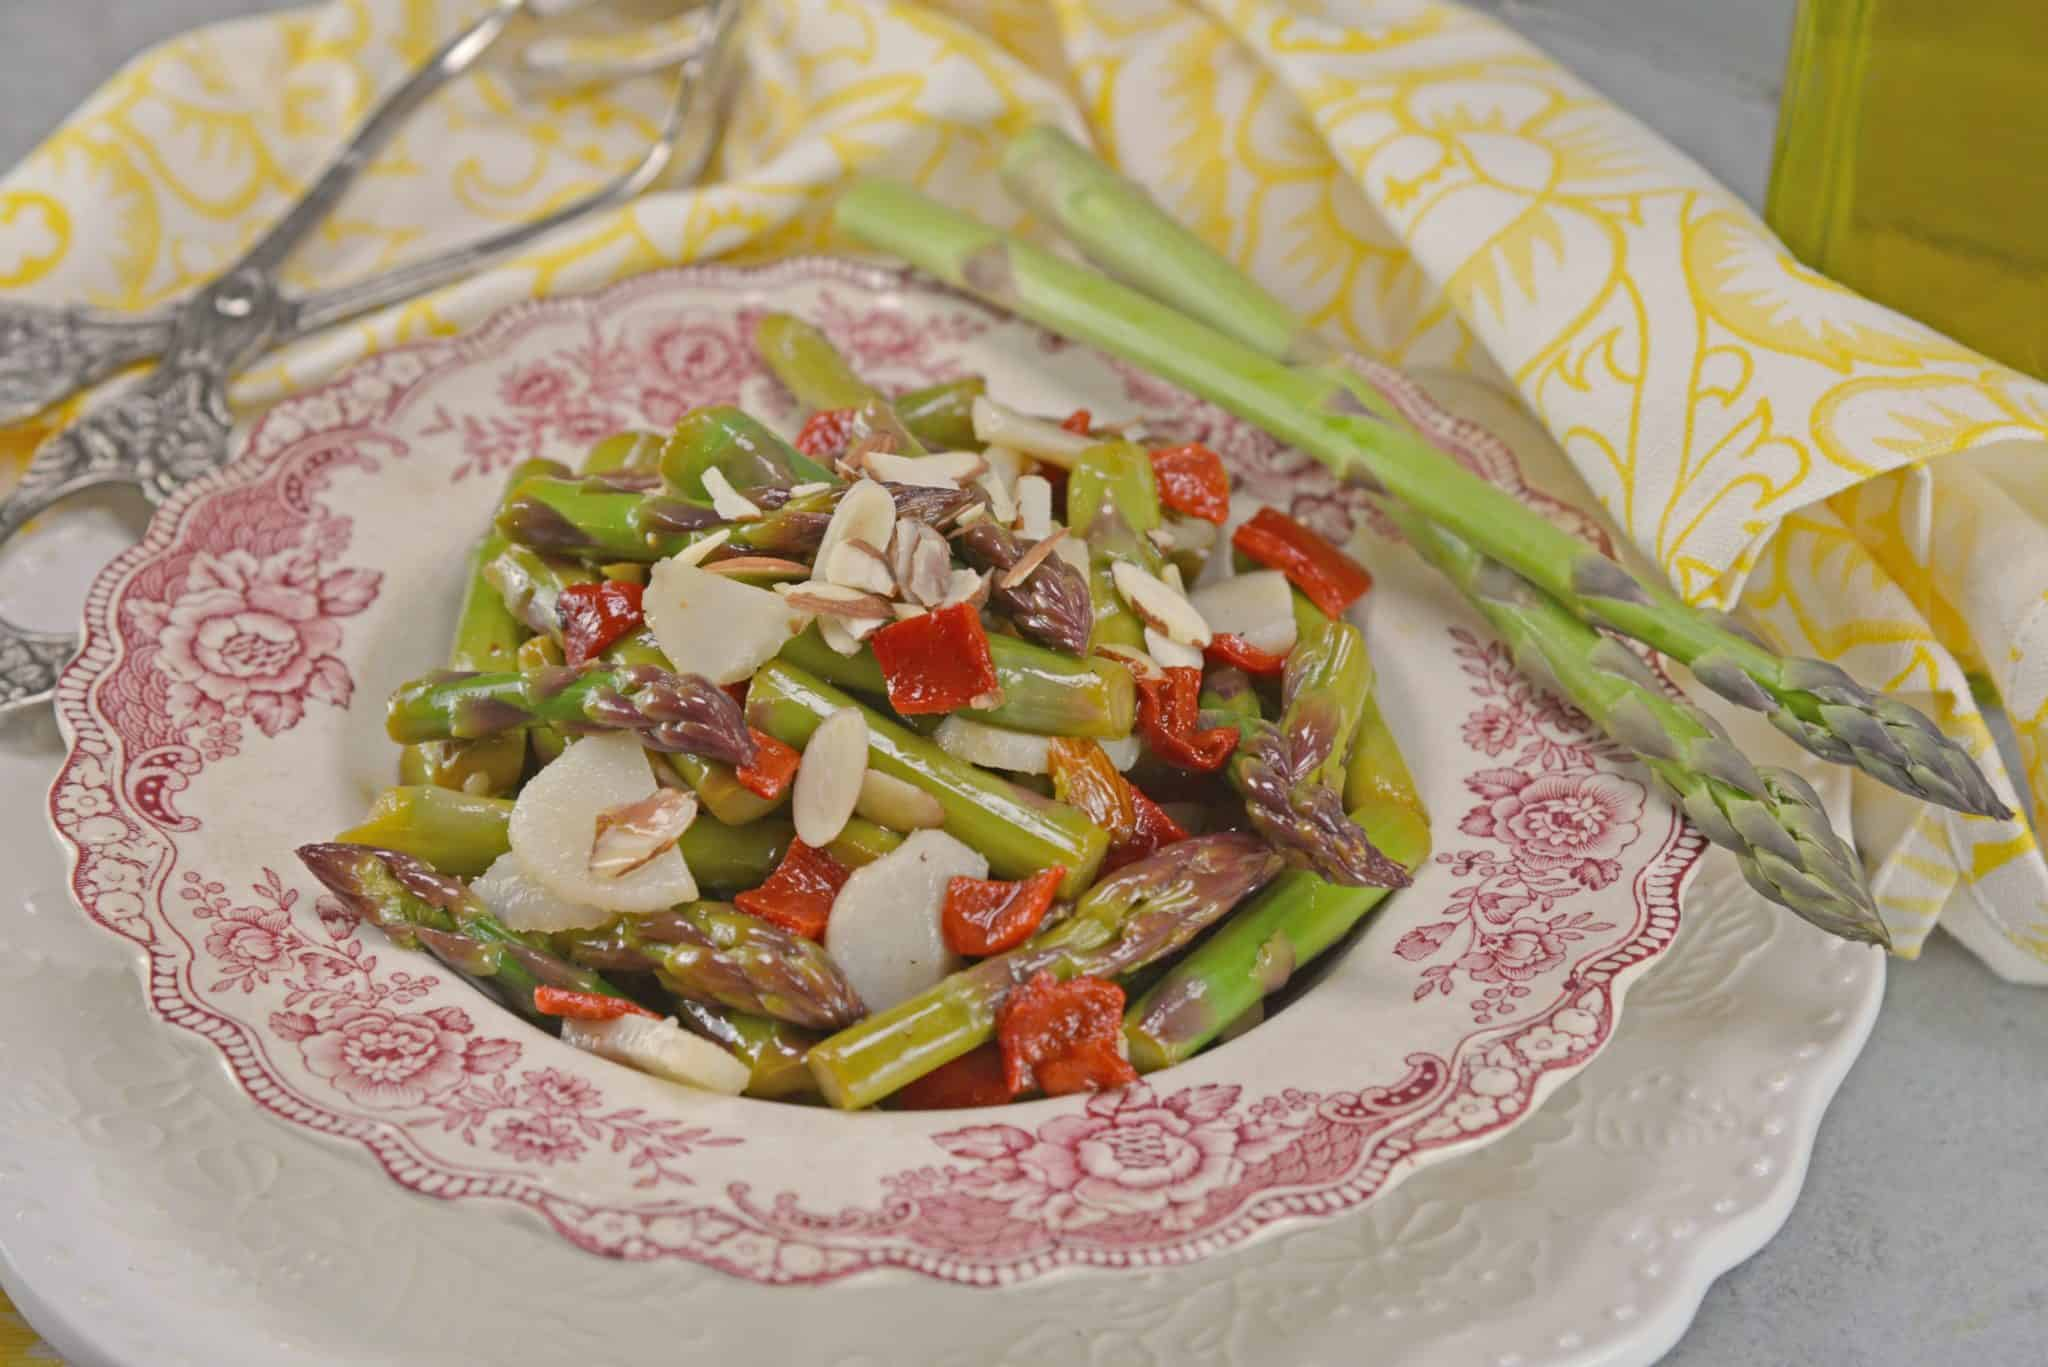 Pickled Asparagus Salad is made with blanched asparagus marinated in a vinaigrette and tossed with water chestnuts, roasted red pepper and almonds.